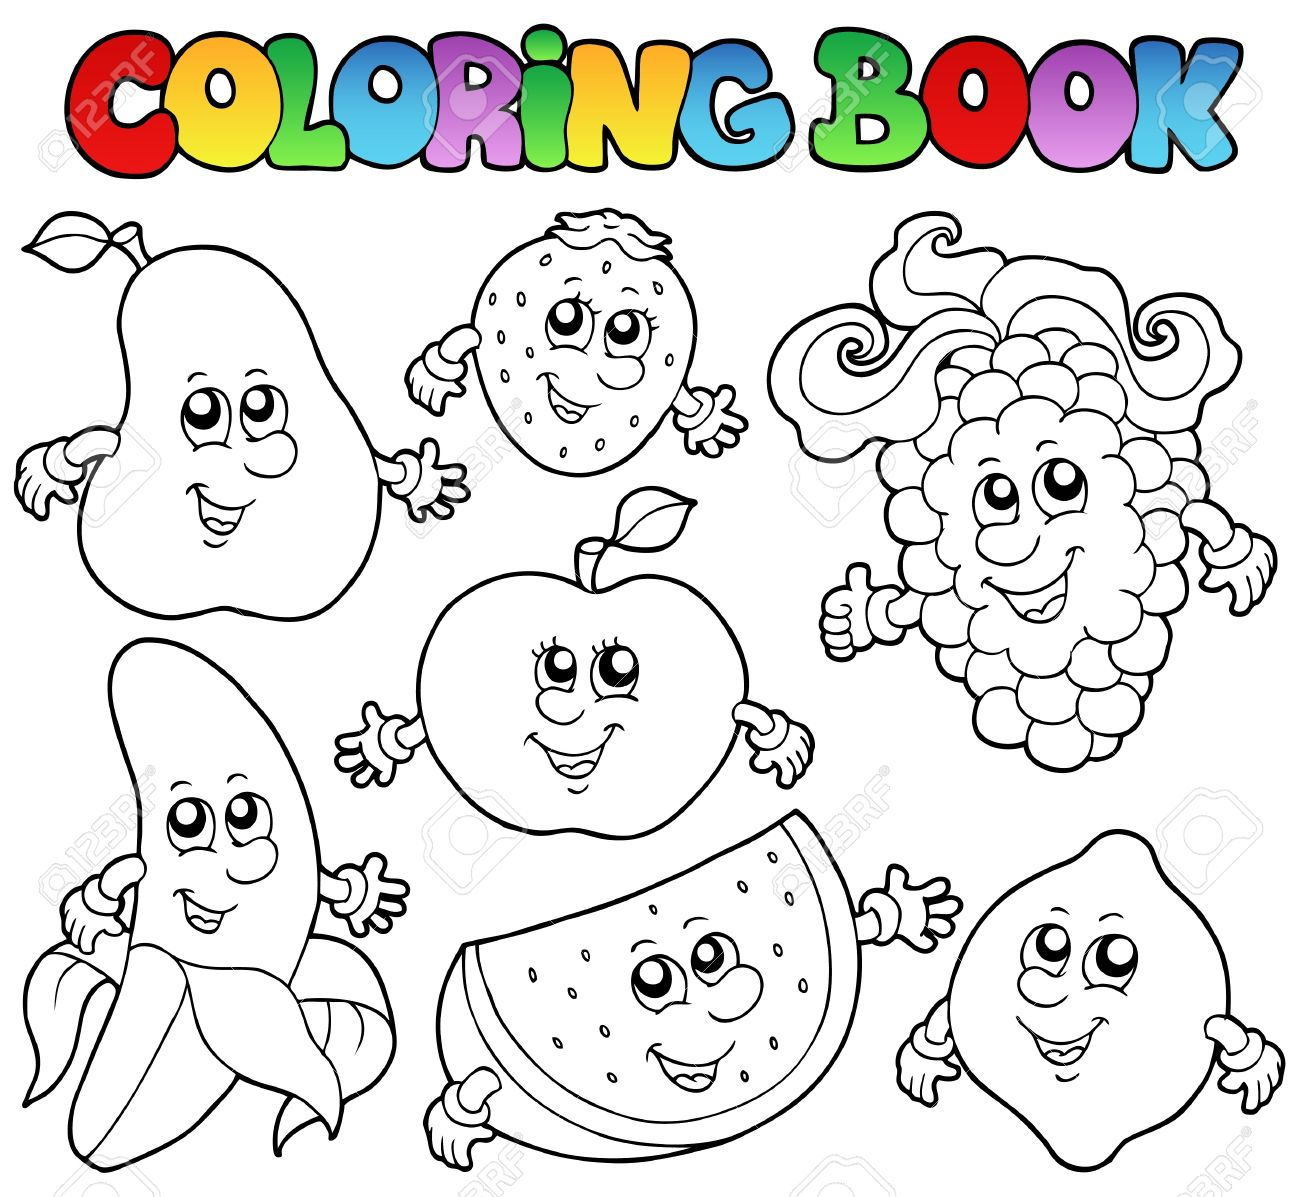 Coloring Book With Various Fruits - Vector Illustration. Royalty ...